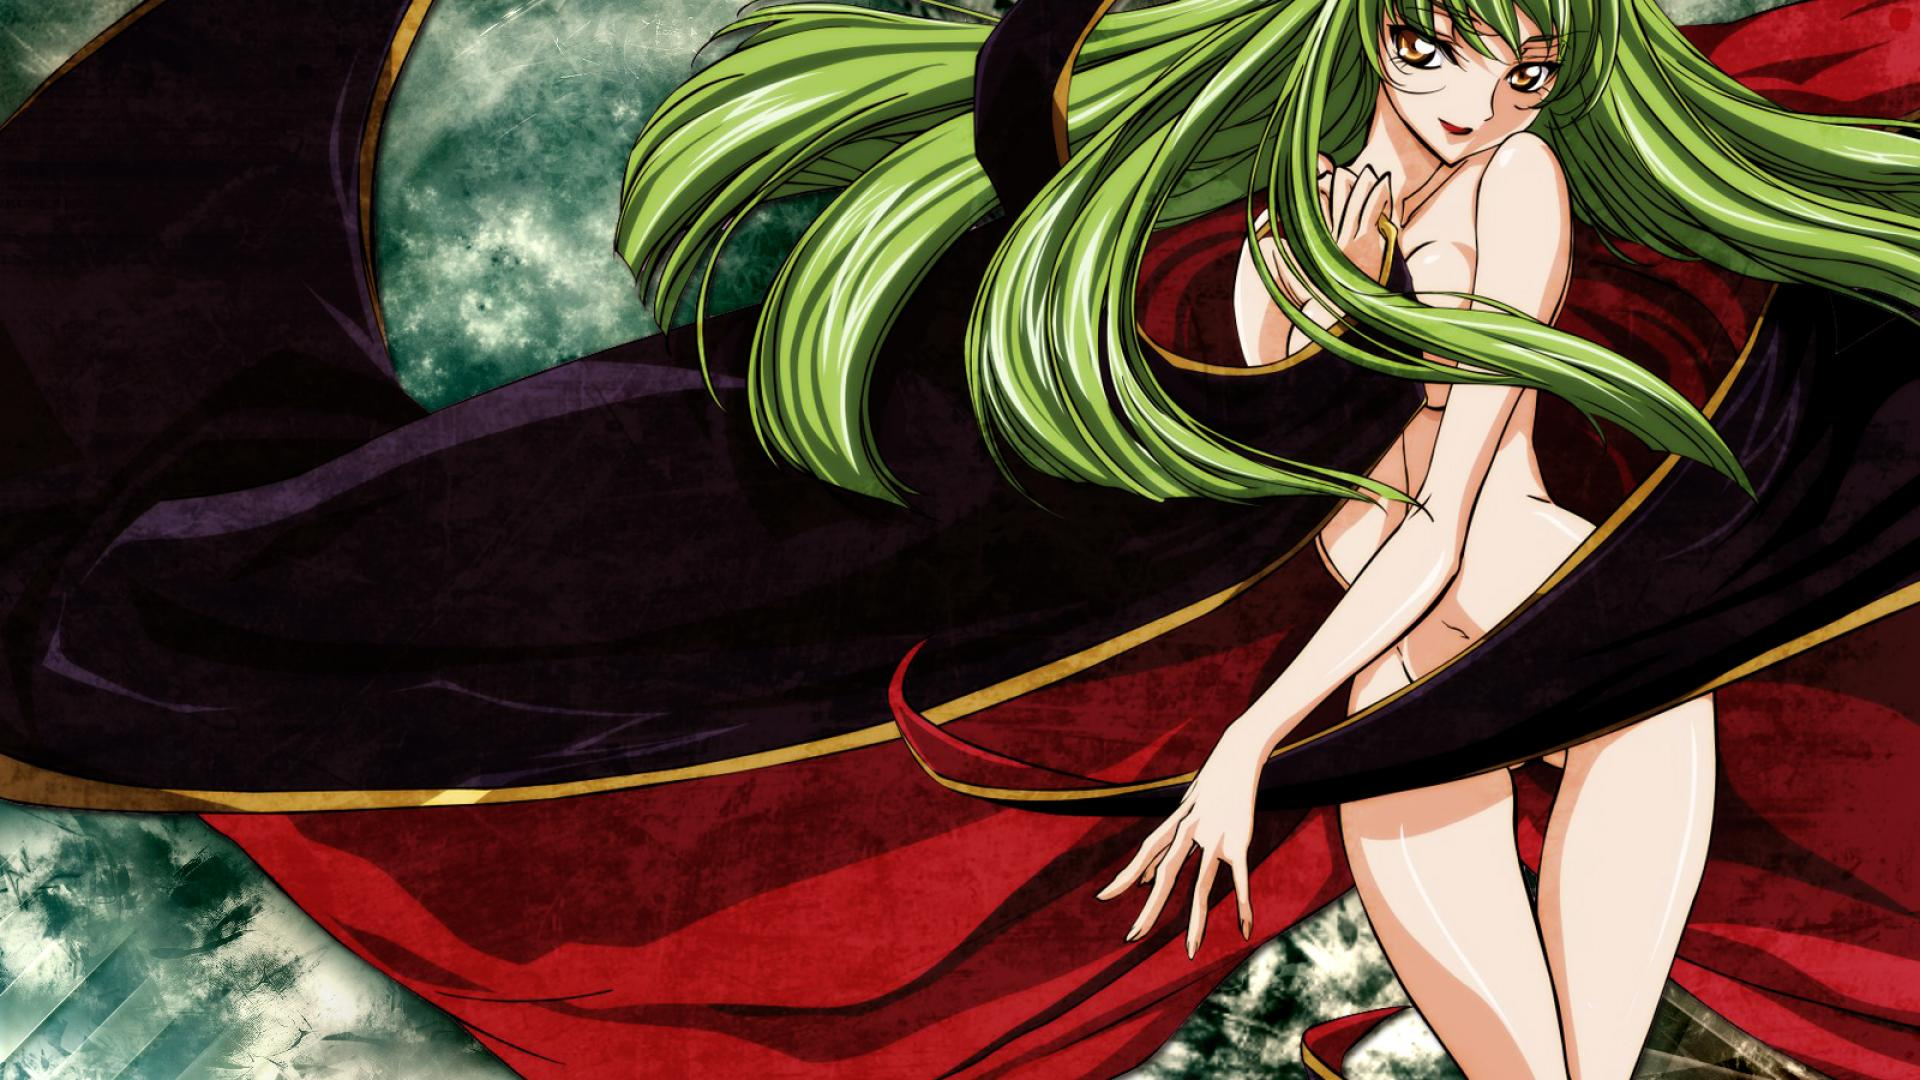 Bleach Wallpapers Hd 1080p Code Geass Hd Wallpapers Pixelstalk Net